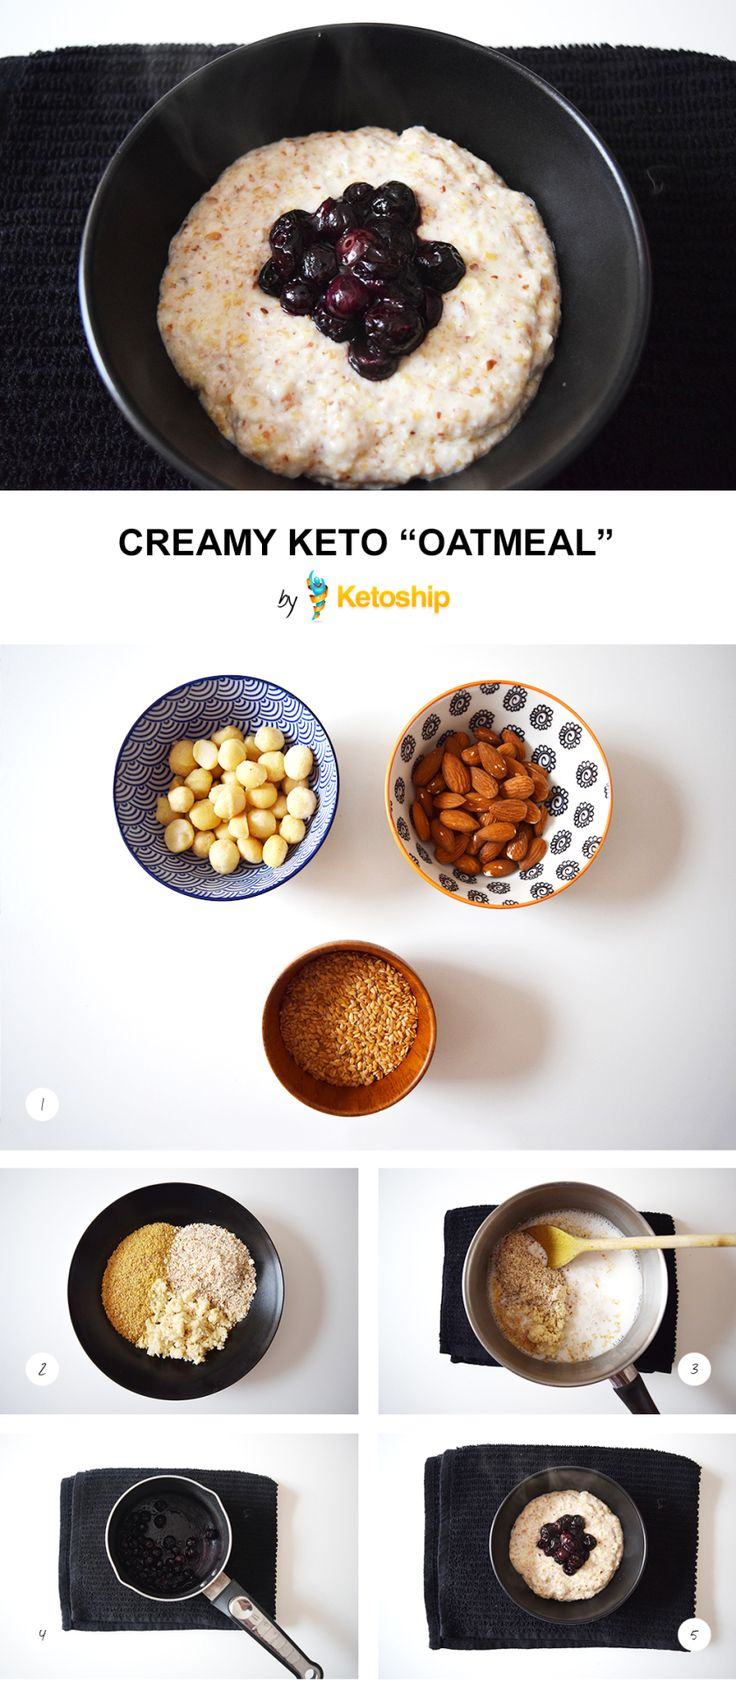 Creamy Keto Oatmeal recipe | Ketoship | Delicious Recipes | Pinterest | Oatmeal recipes, Keto ...